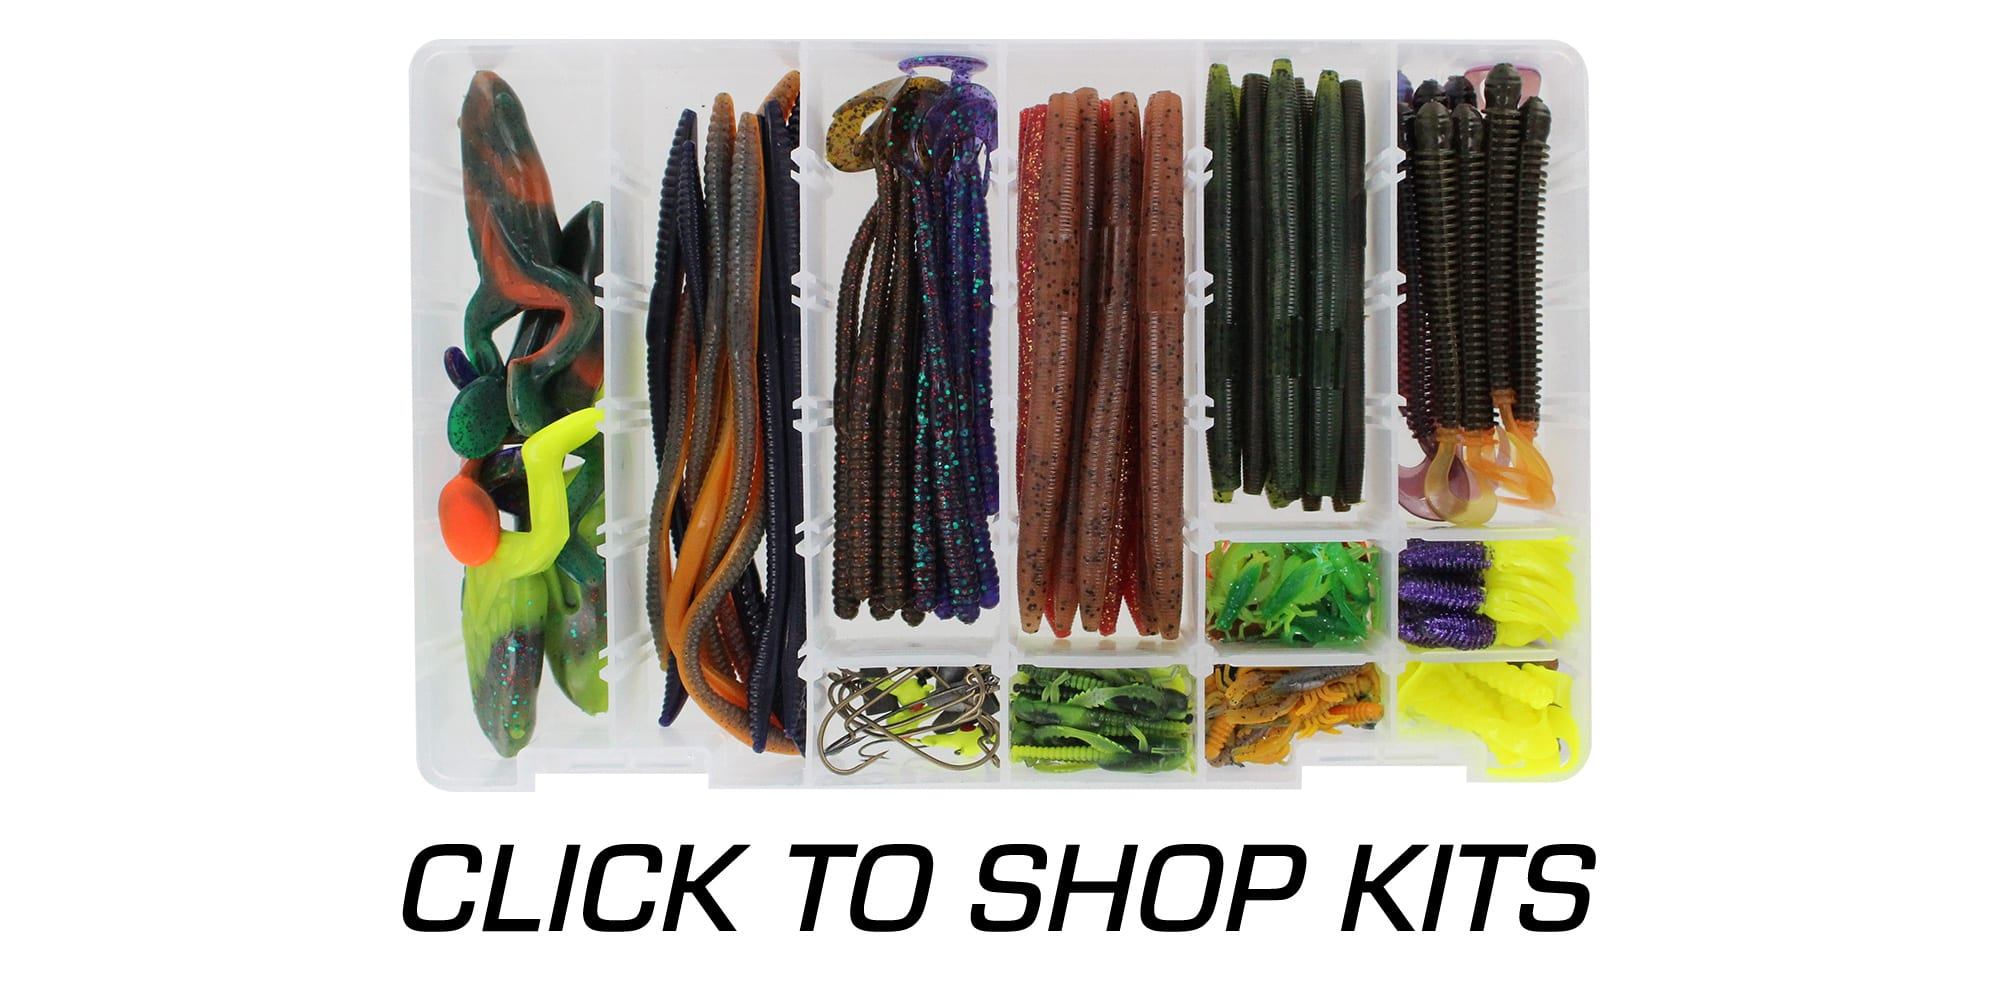 click to shop kits